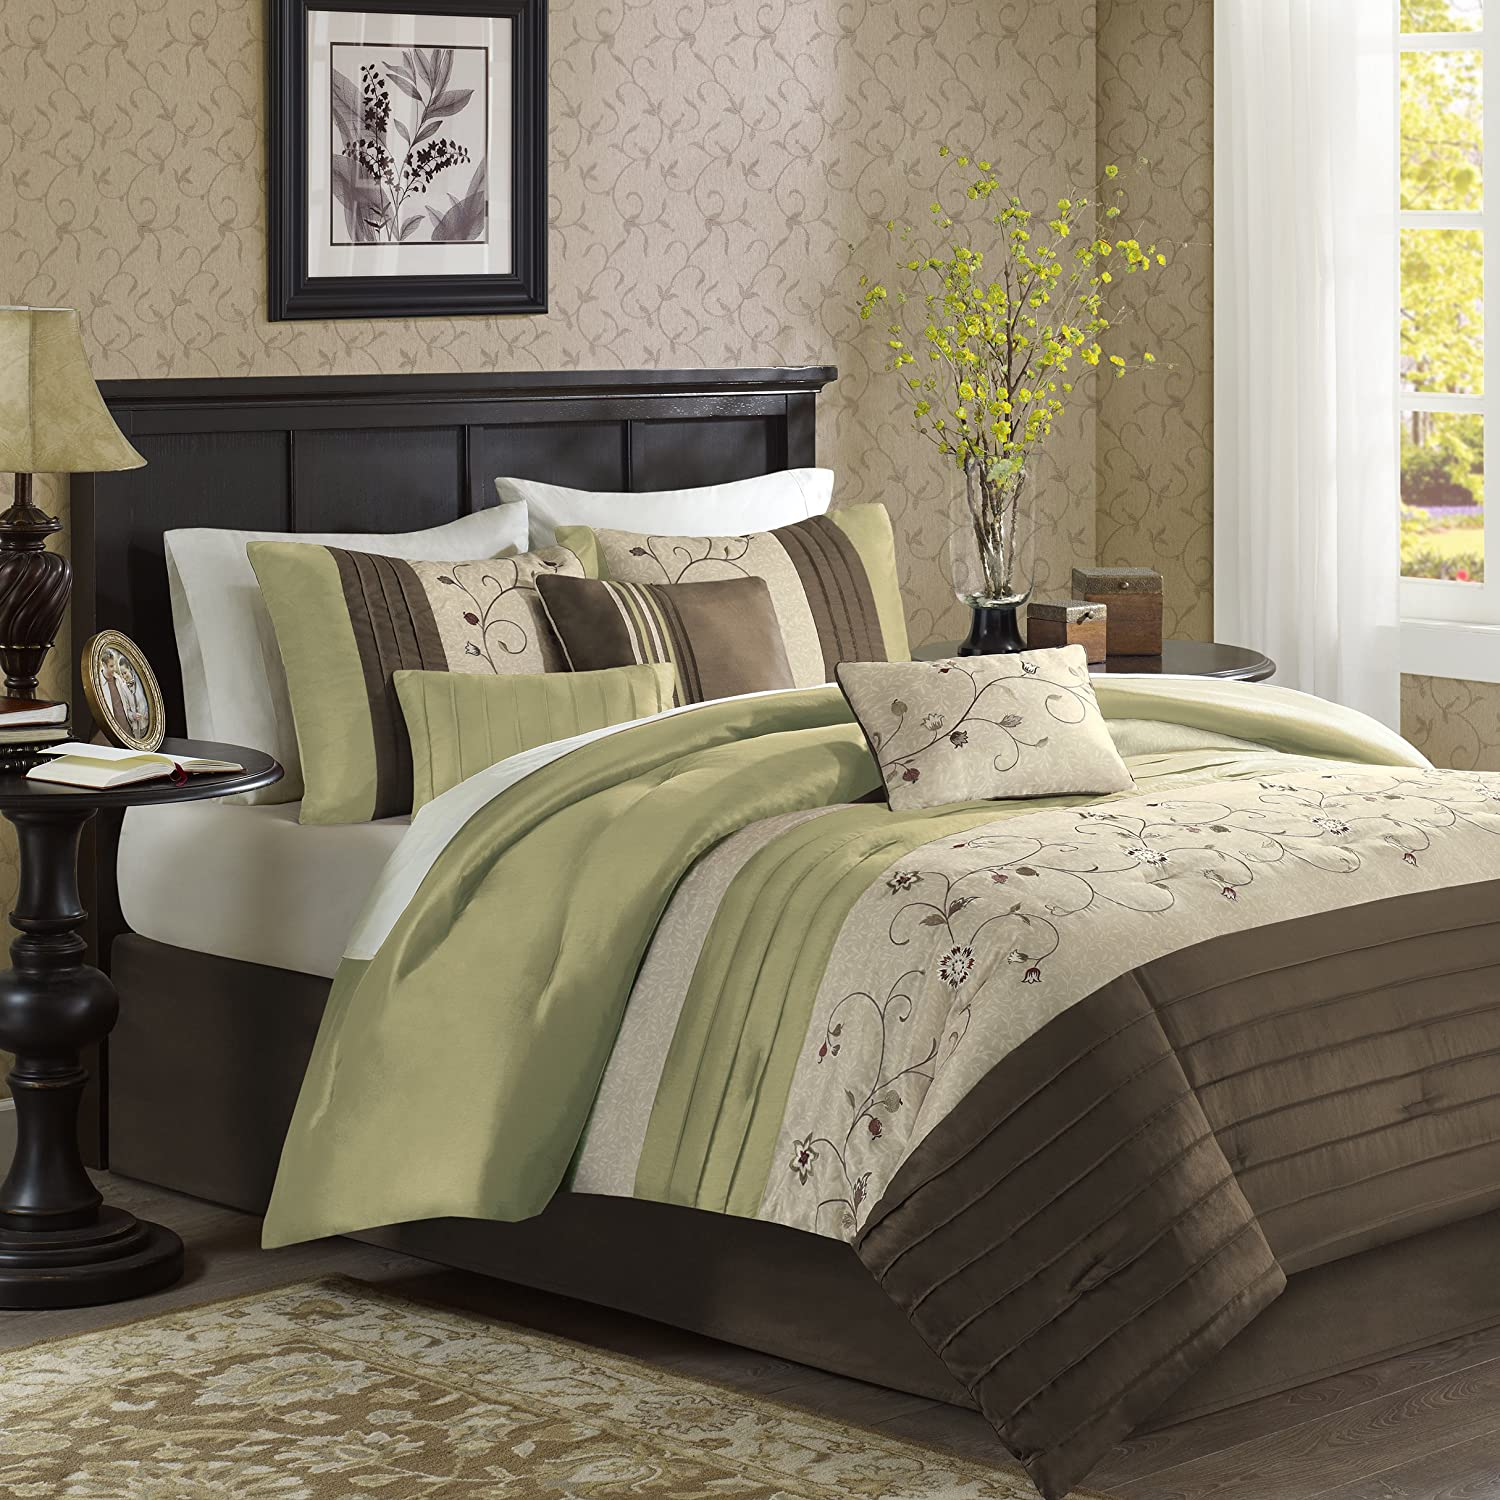 set your blue magnificent lime mint decor pink green sage and twin up sets bedding zebra limecent fascinating black dotty with bedroom little freshen ones comforter the xl